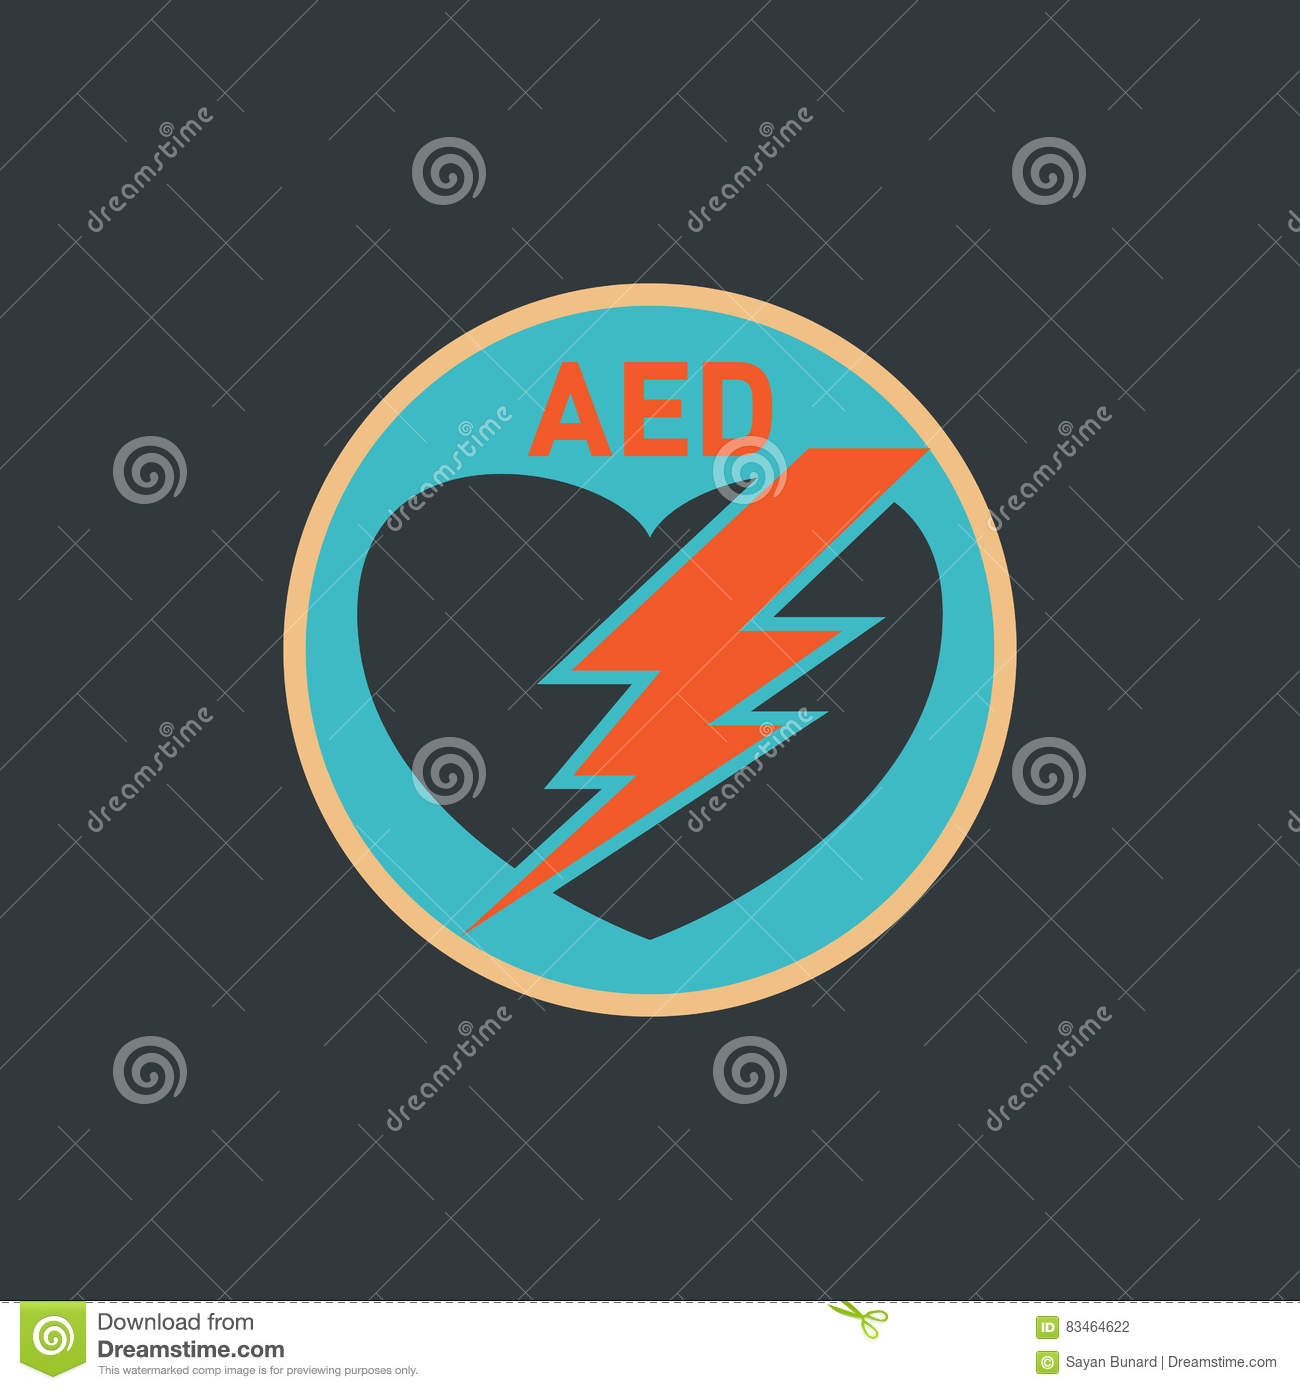 Aed logo vector (. Eps, 374. 66 kb) download.